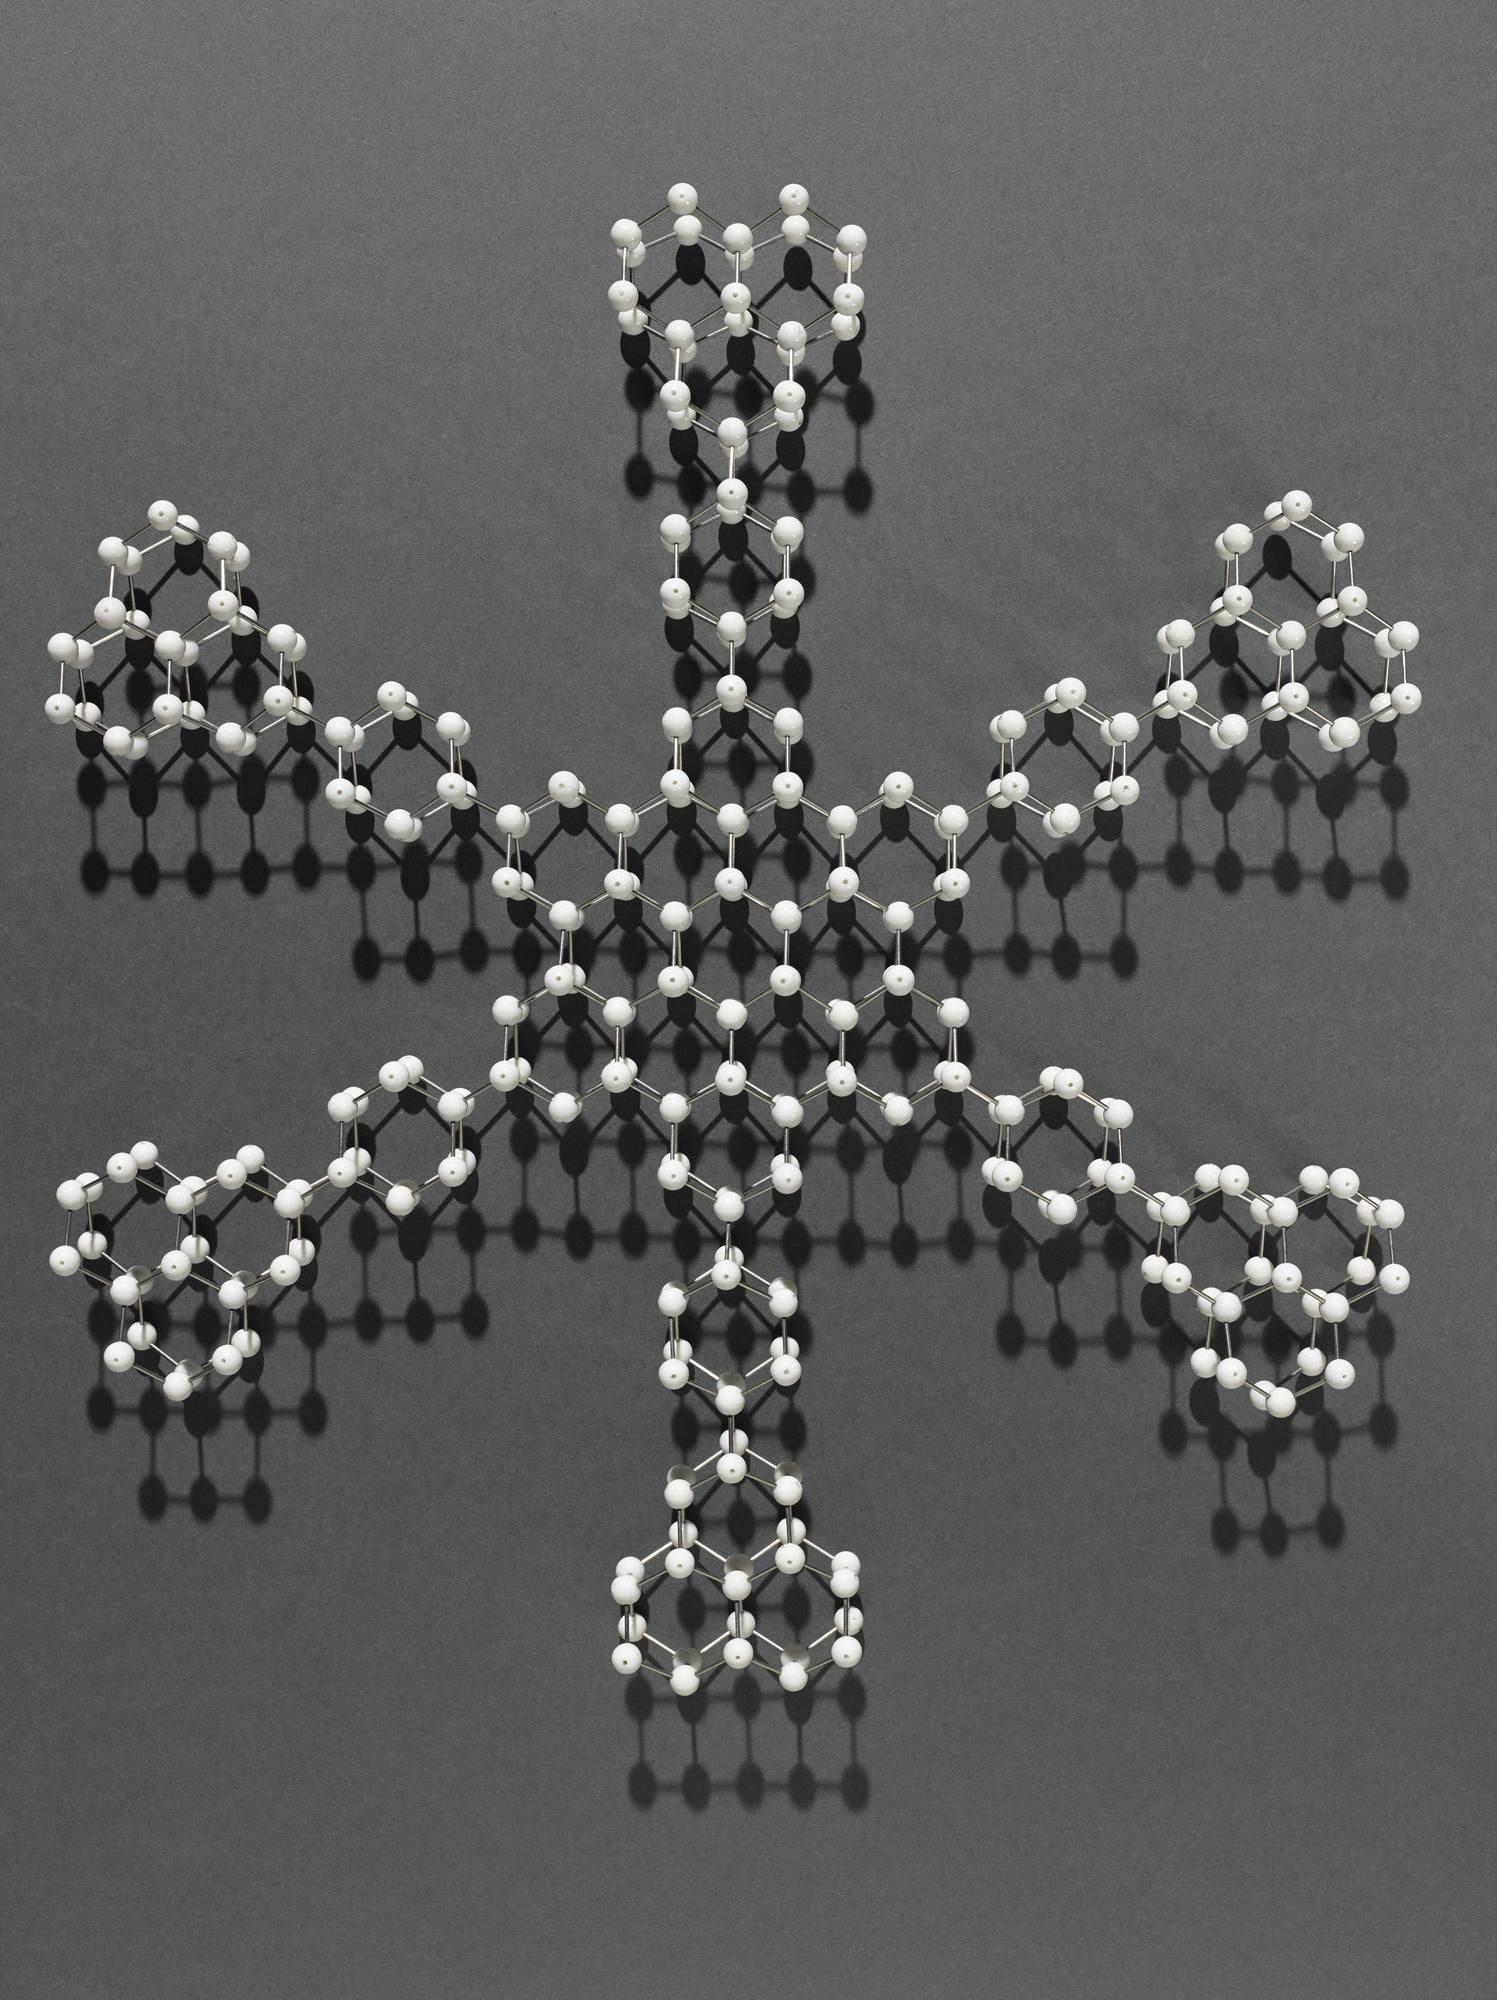 Miramodus Molecular Model Of A Snowflake National Museums